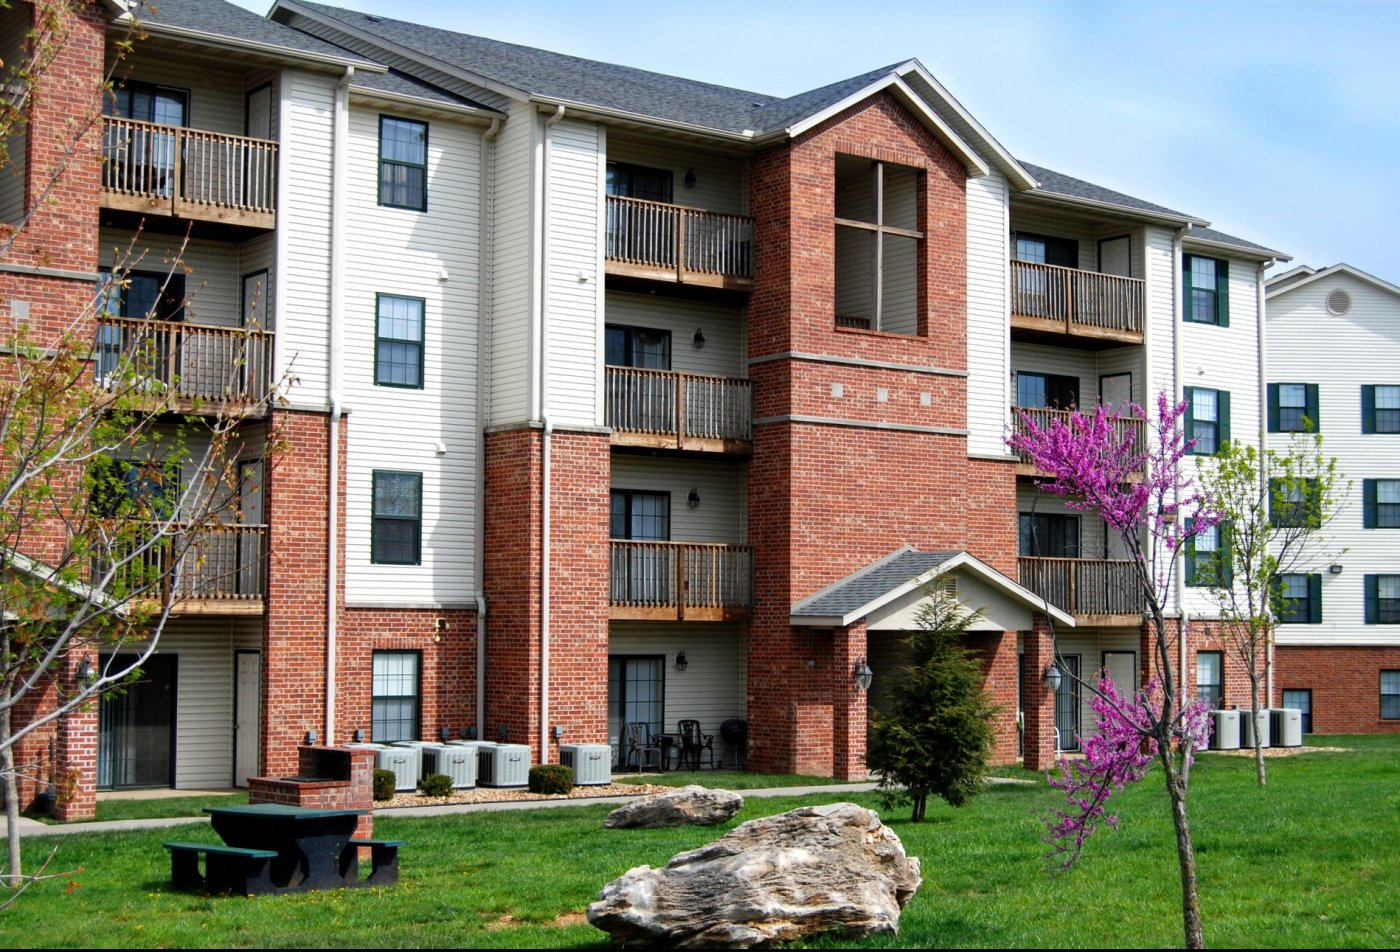 Exterior of Apartment complex with lush landscaping and barbecue stations